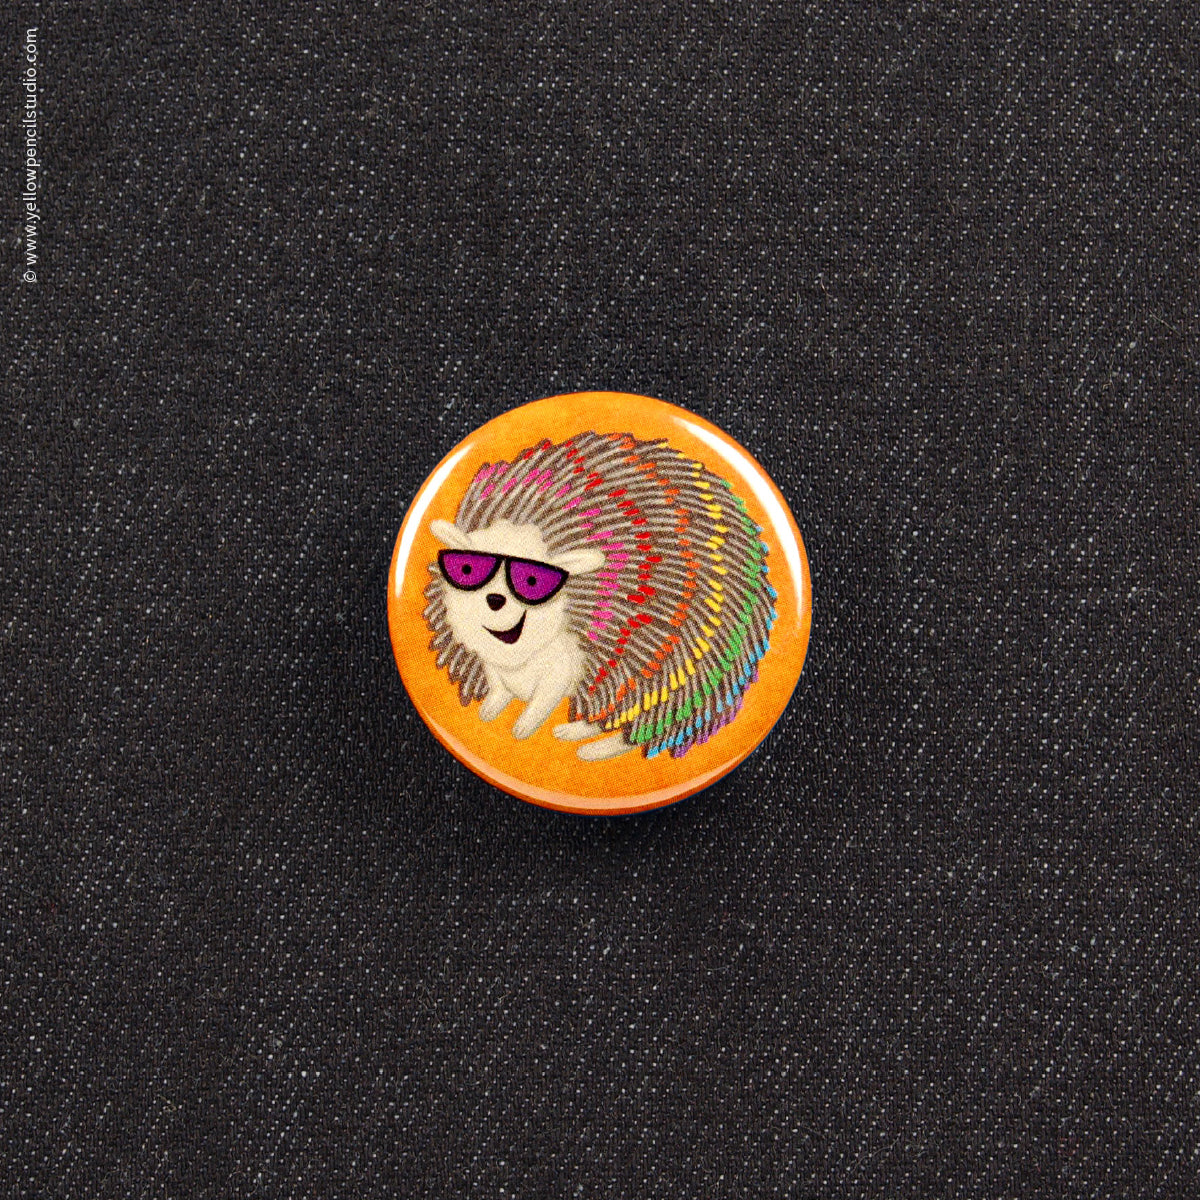 Rainbow Hedgehog Button - Yellow Pencil Studio